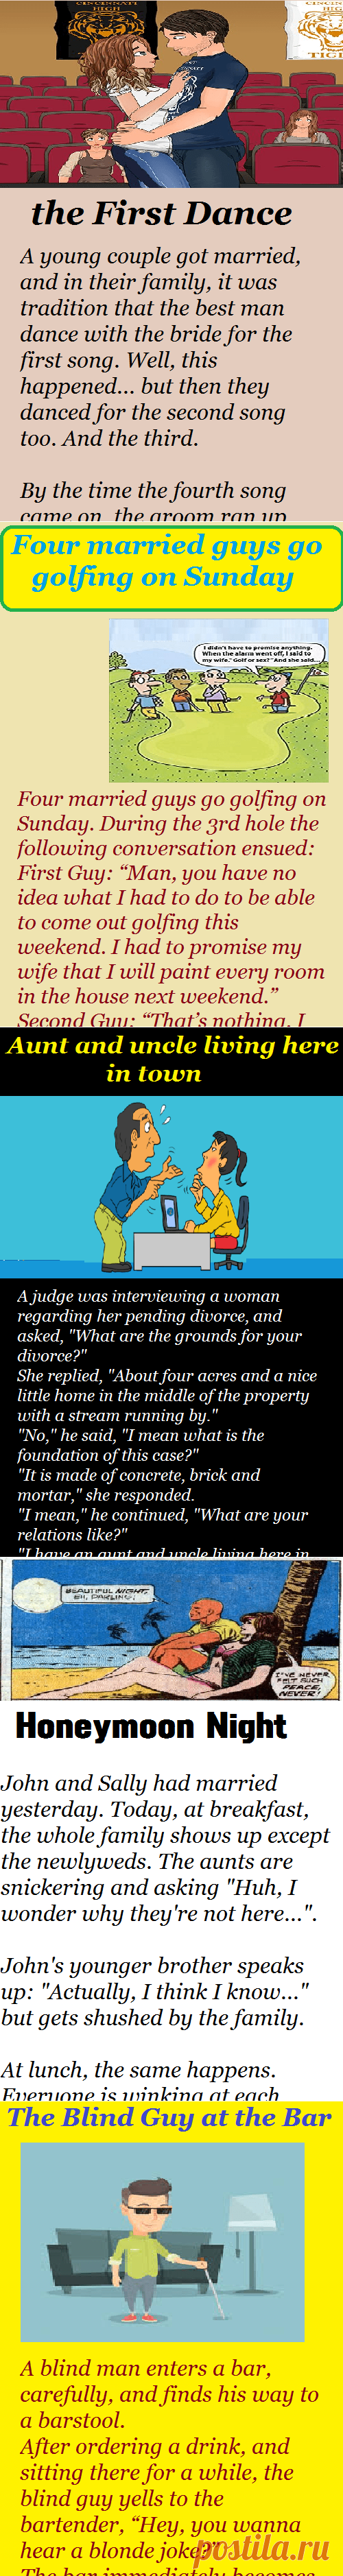 Jokes Archives - Page 59 of 63 - Jokes Today